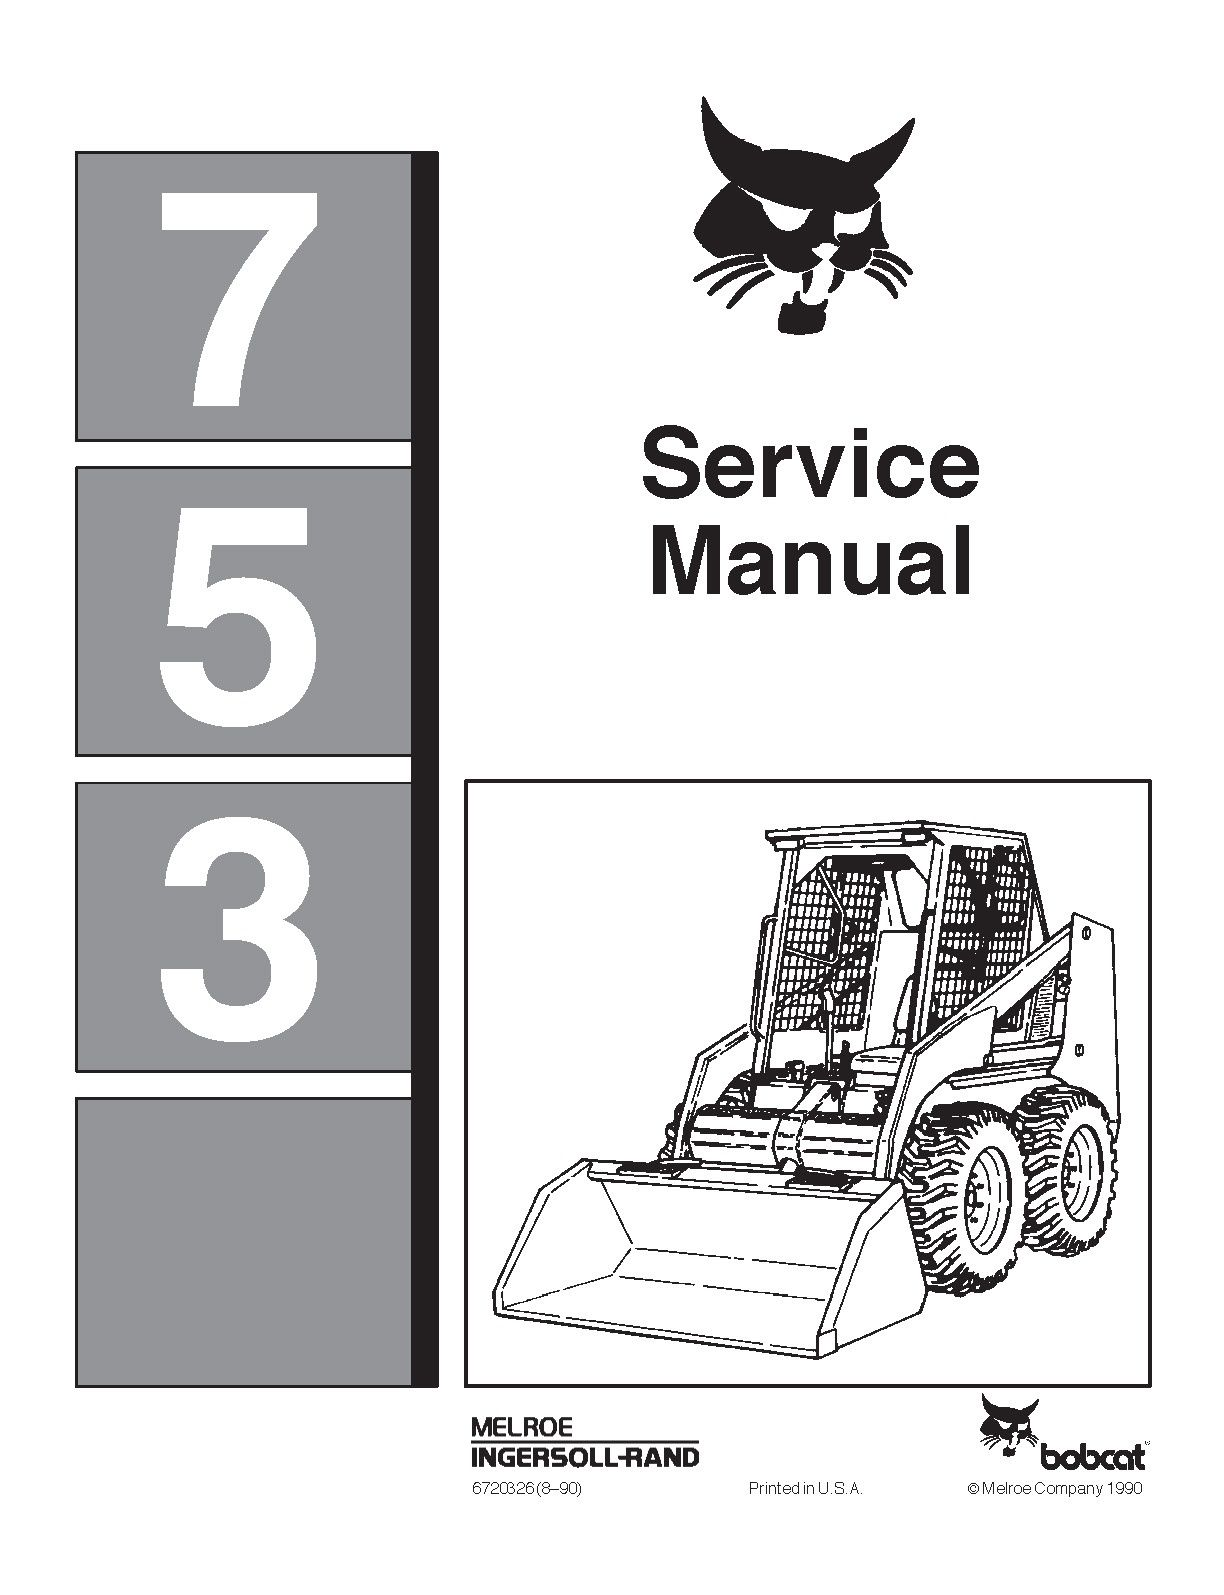 medium resolution of bobcat 753 skid steer wiring diagram wiring diagram data site bobcat 753 starter wiring diagram bobcat 753 wiring diagram